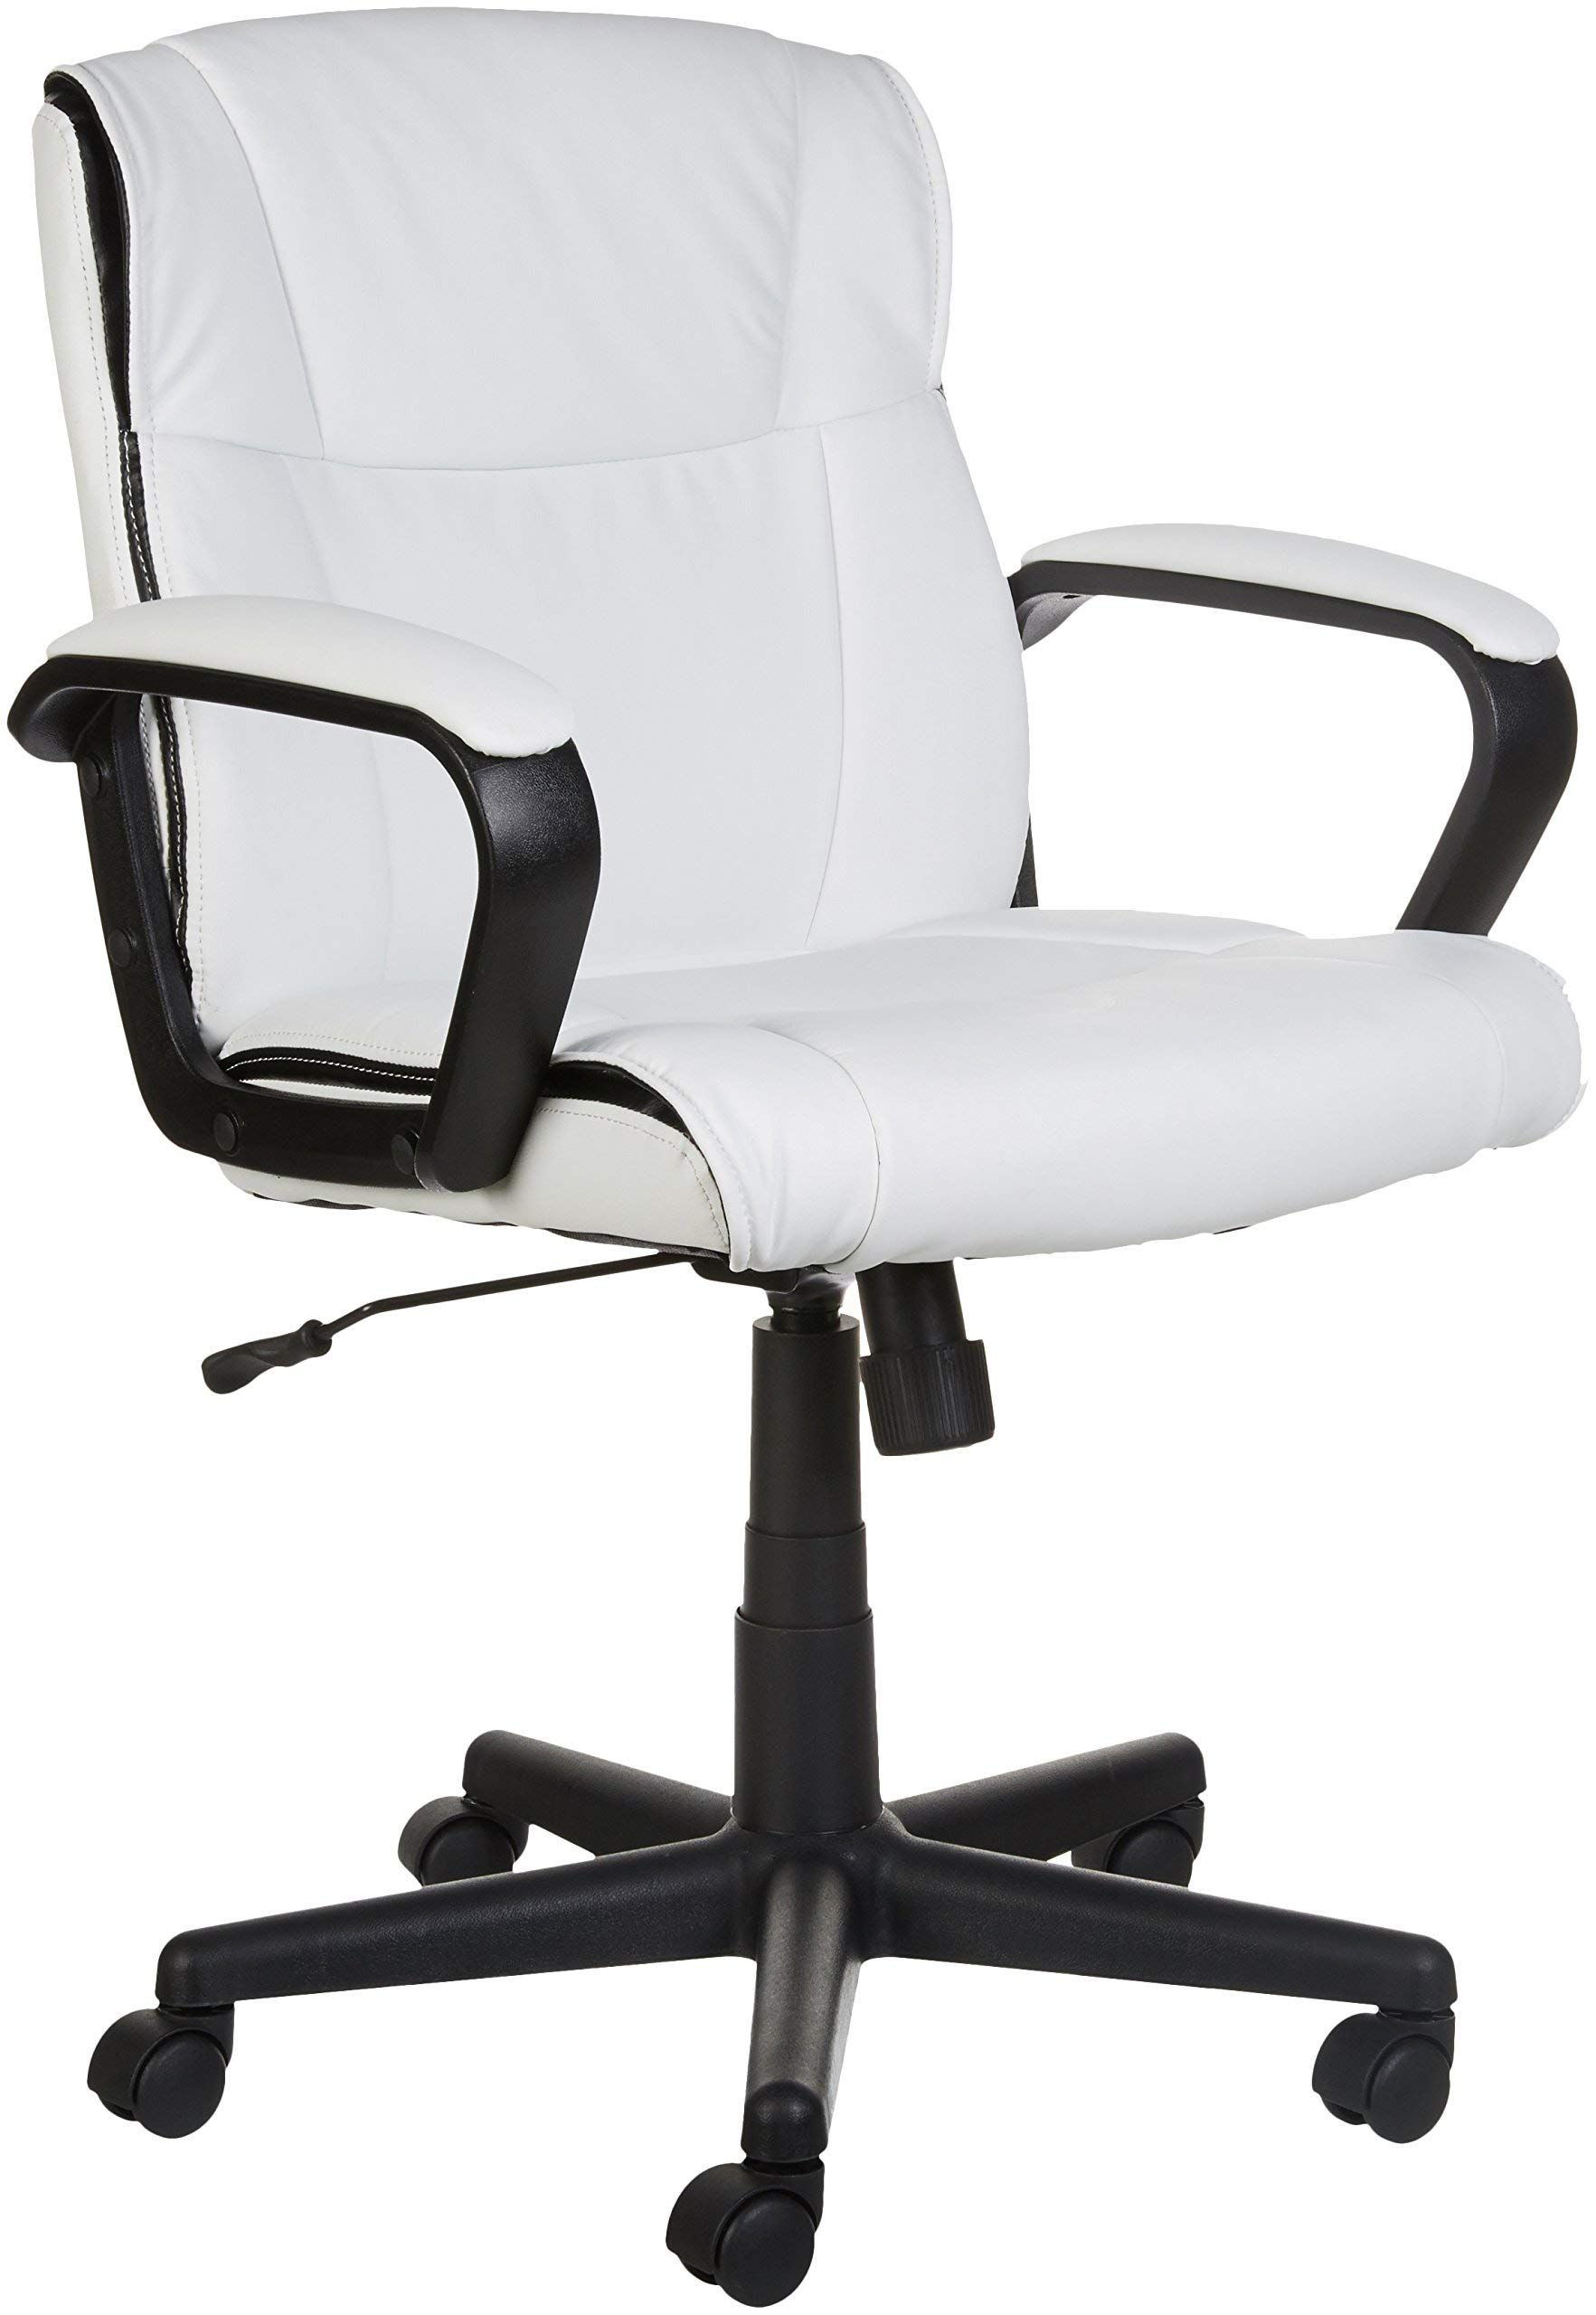 AmazonBasics Classic Leather-Padded Mid-Back Office Computer Desk Chair with Armrest - White by AmazonBasics (Image #1)